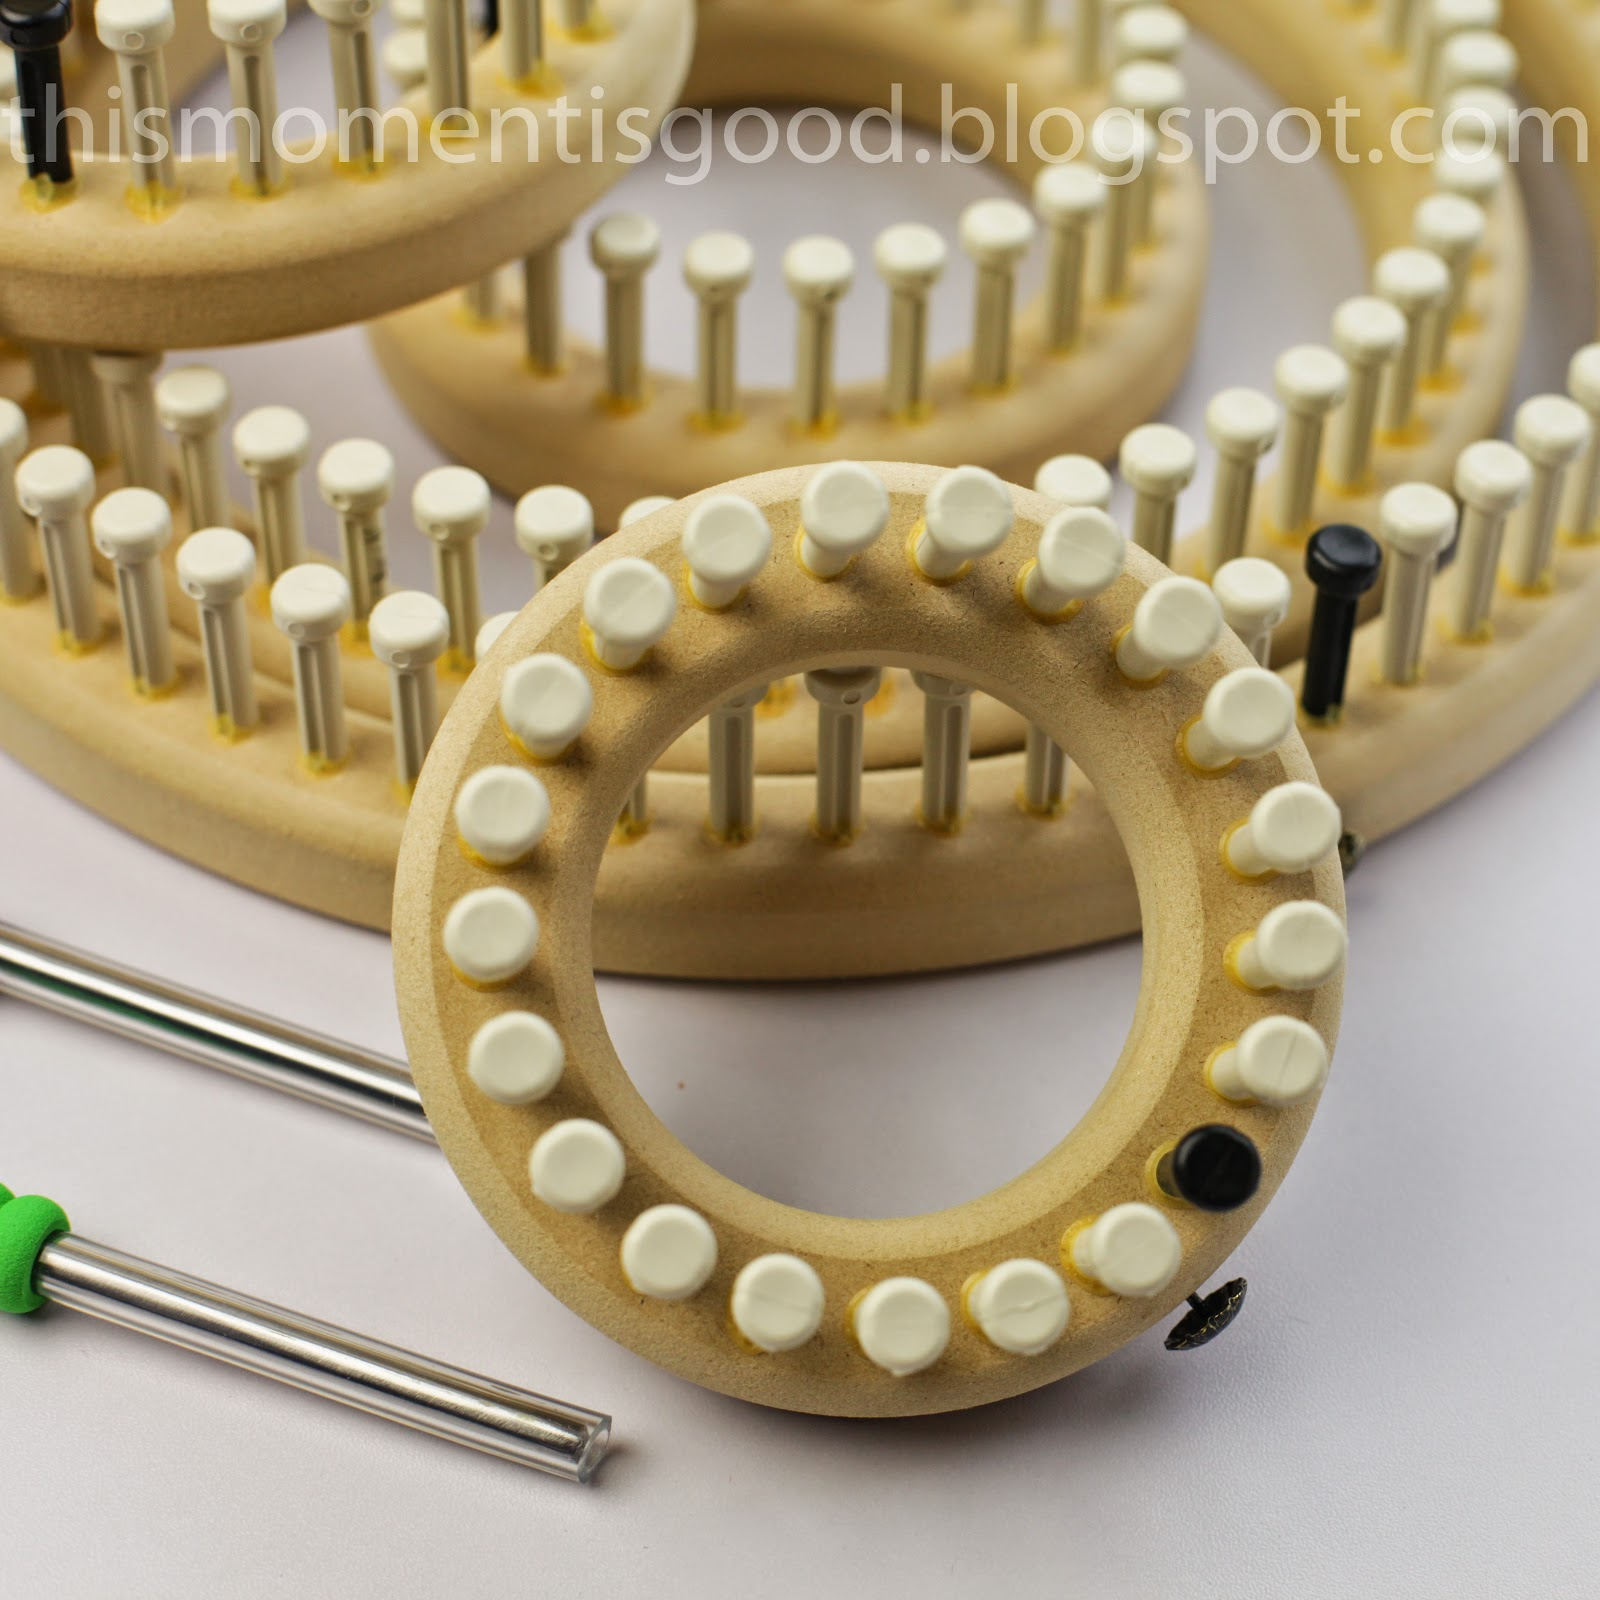 Knitting Loom 12 Pegs : Loom knitting by this moment is good a look at cindwood